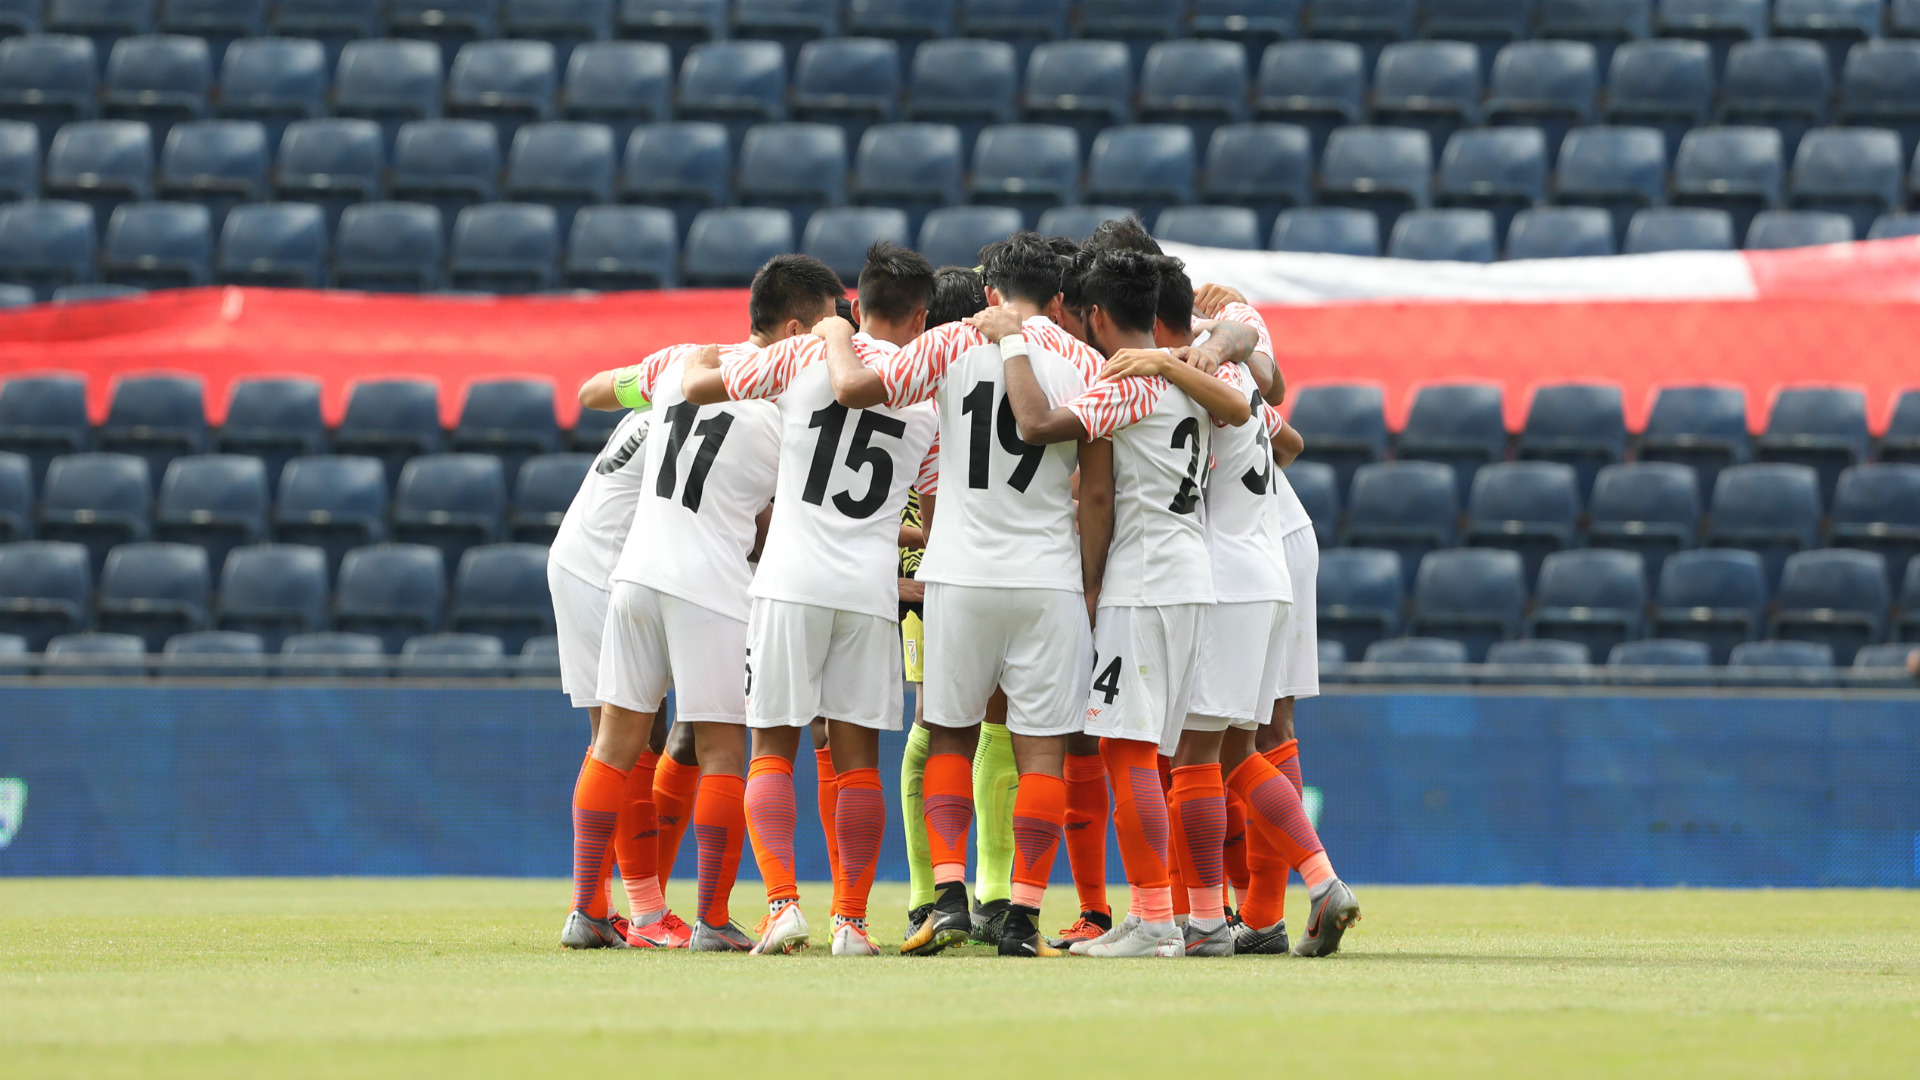 2019 Intercontinental Cup: An all-Asian affair after ages